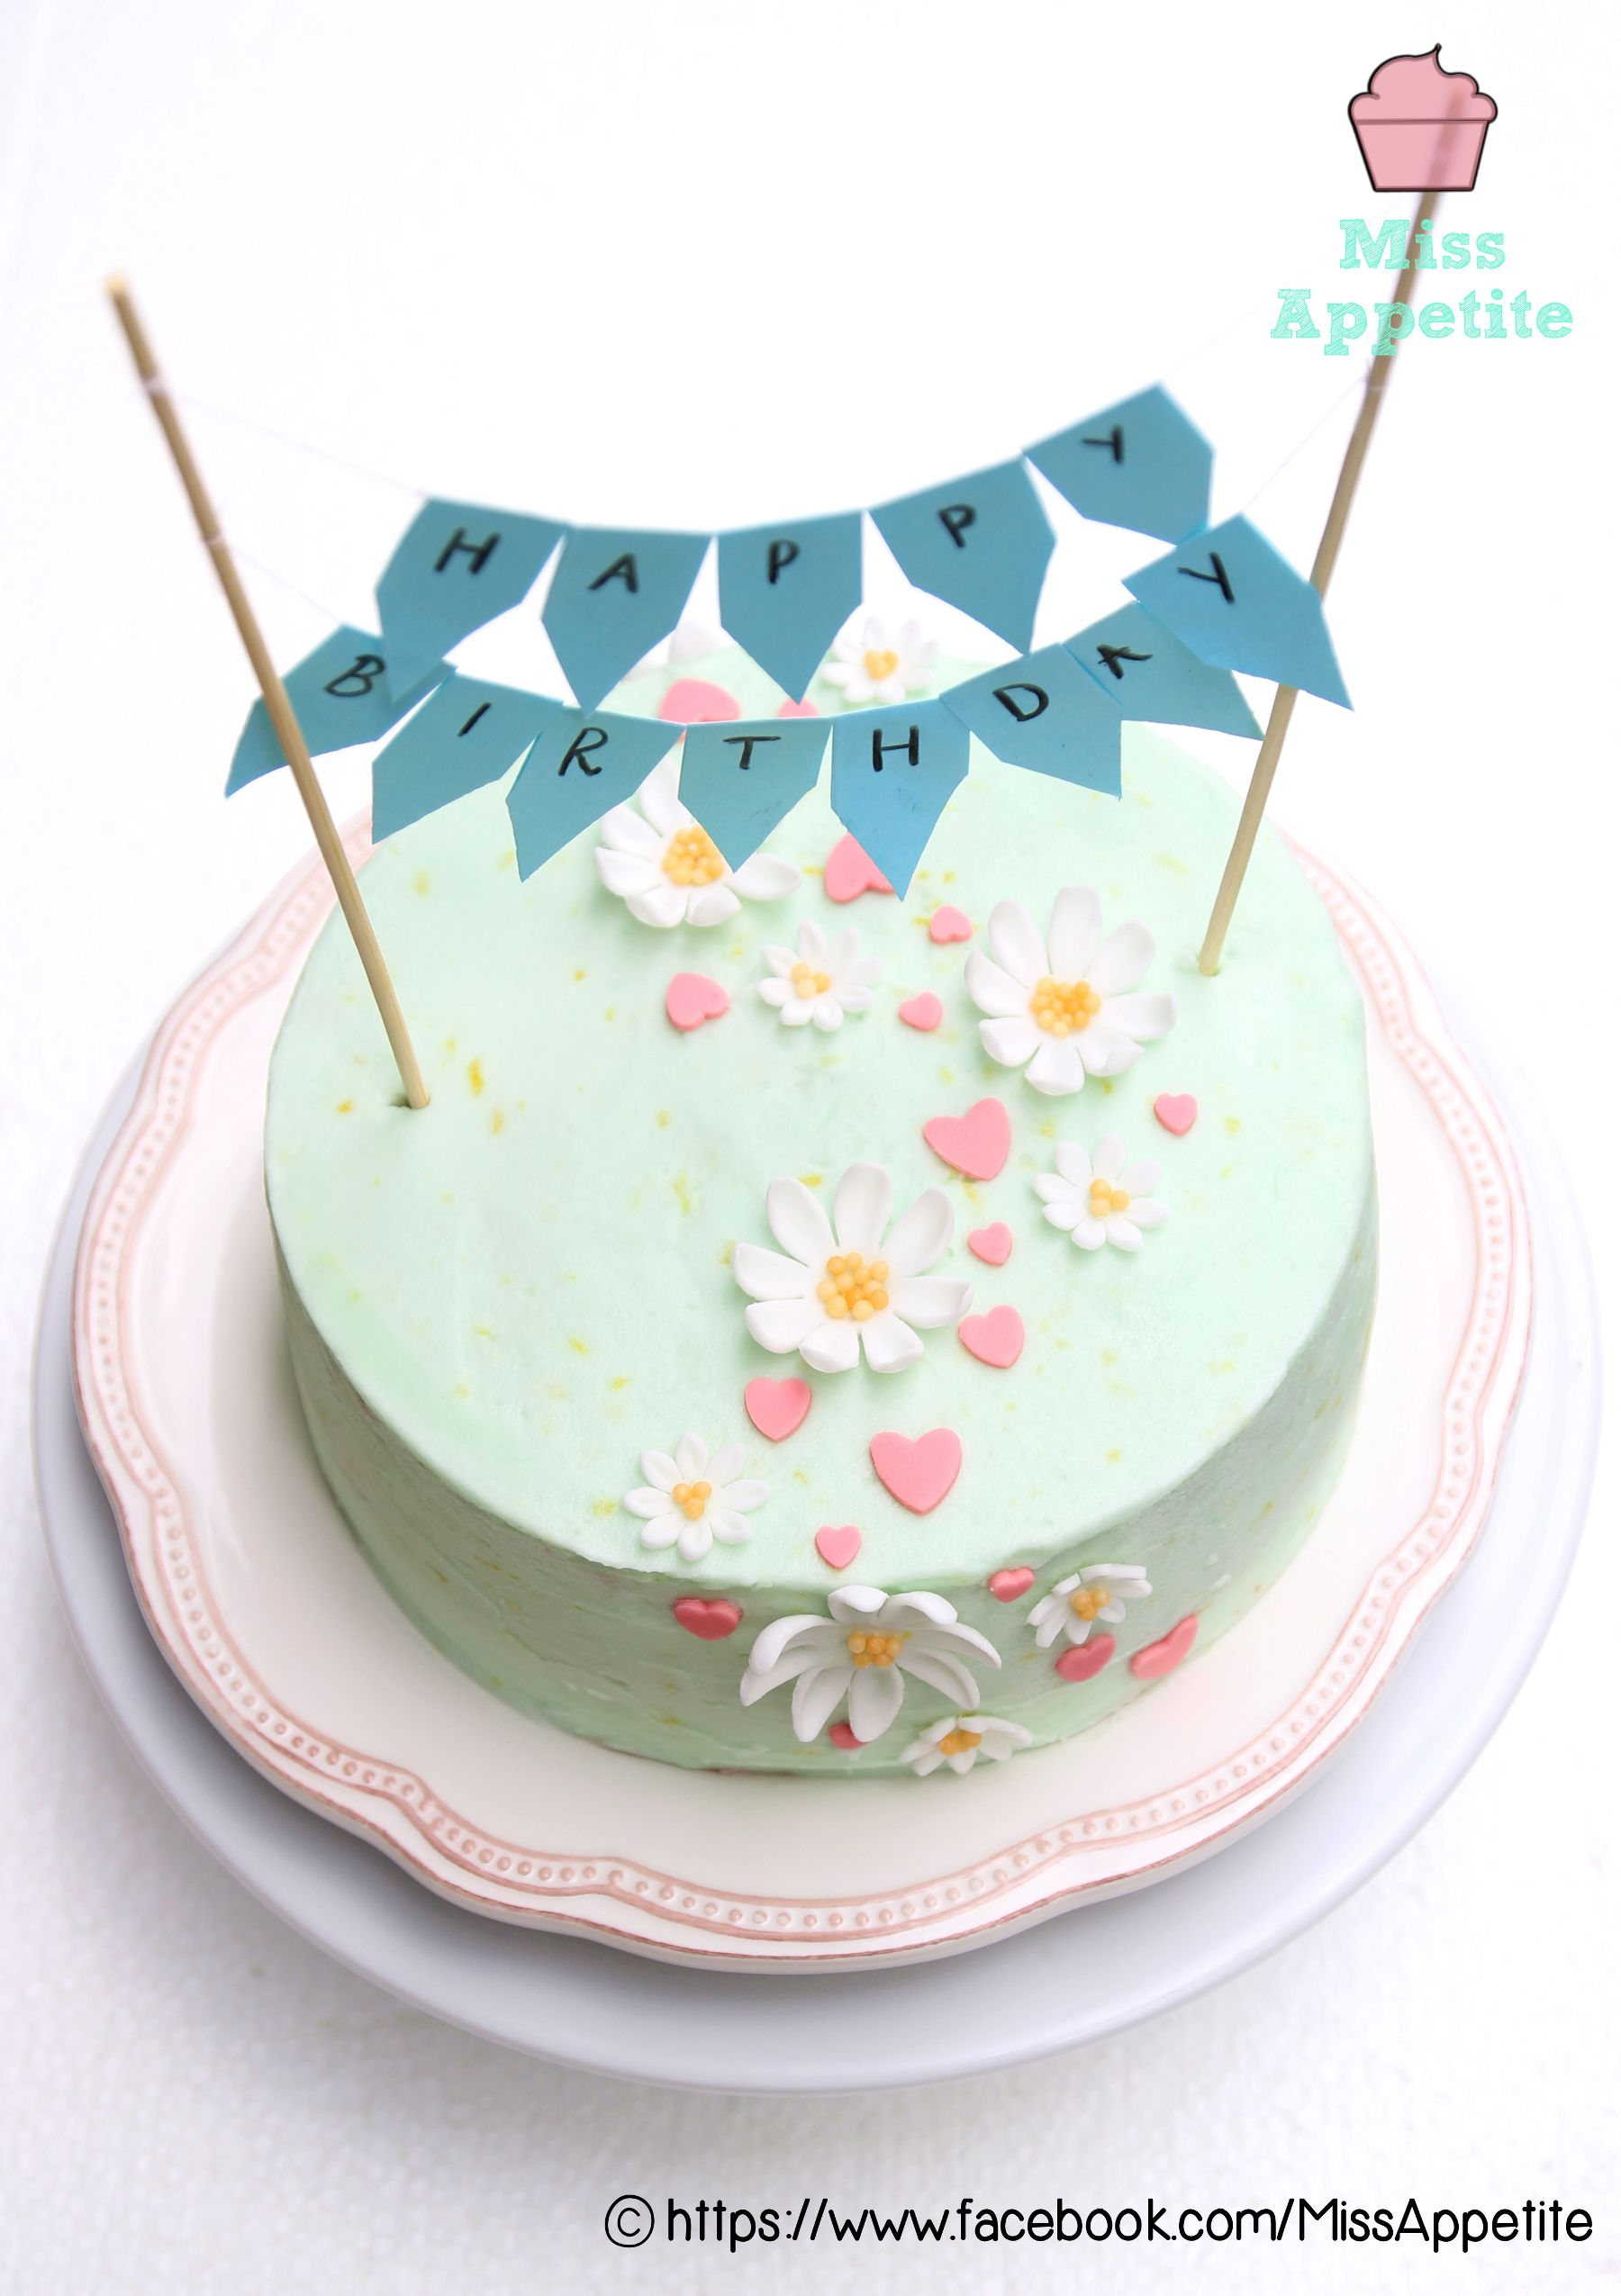 Pastel mint green mini buttercream birthday cake decorated with